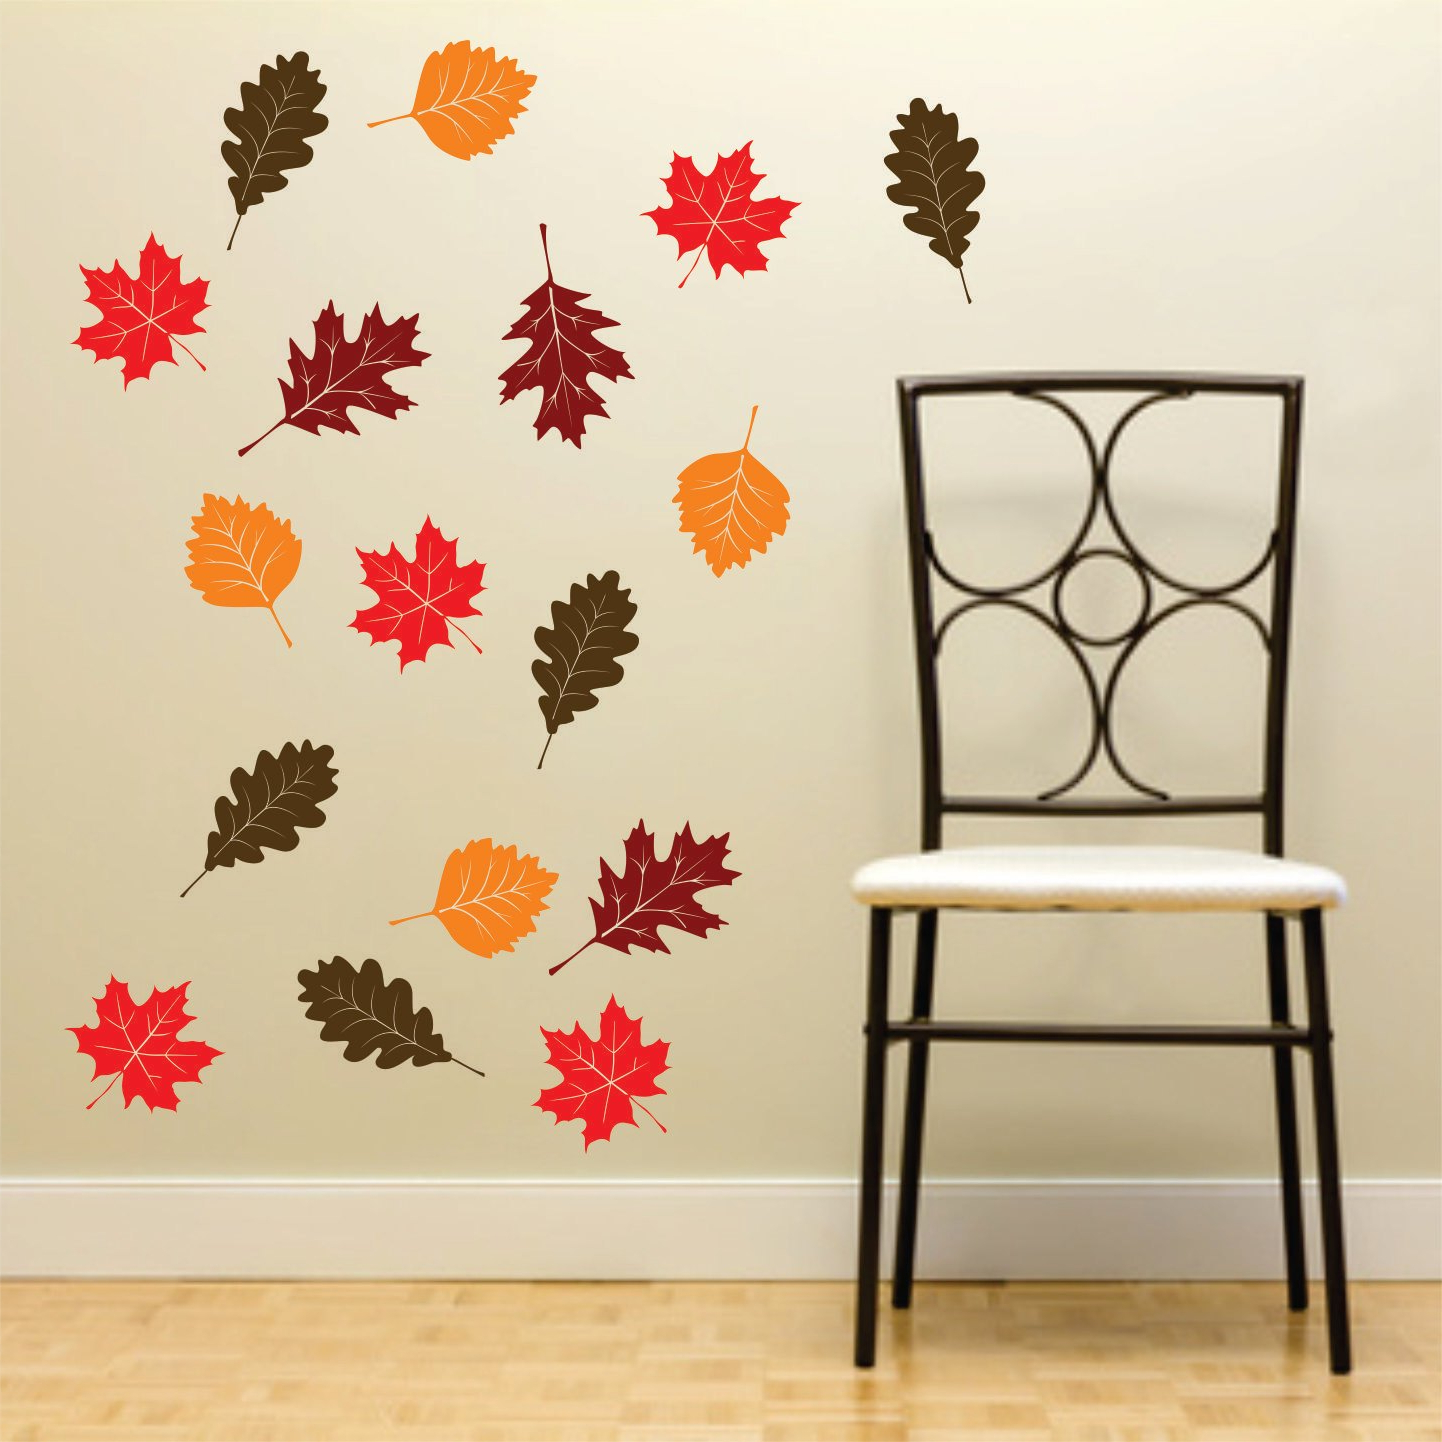 Most Recent Desford Leaf Wall Decor Inside Leaf Wall Art – Listitdallas (View 12 of 20)